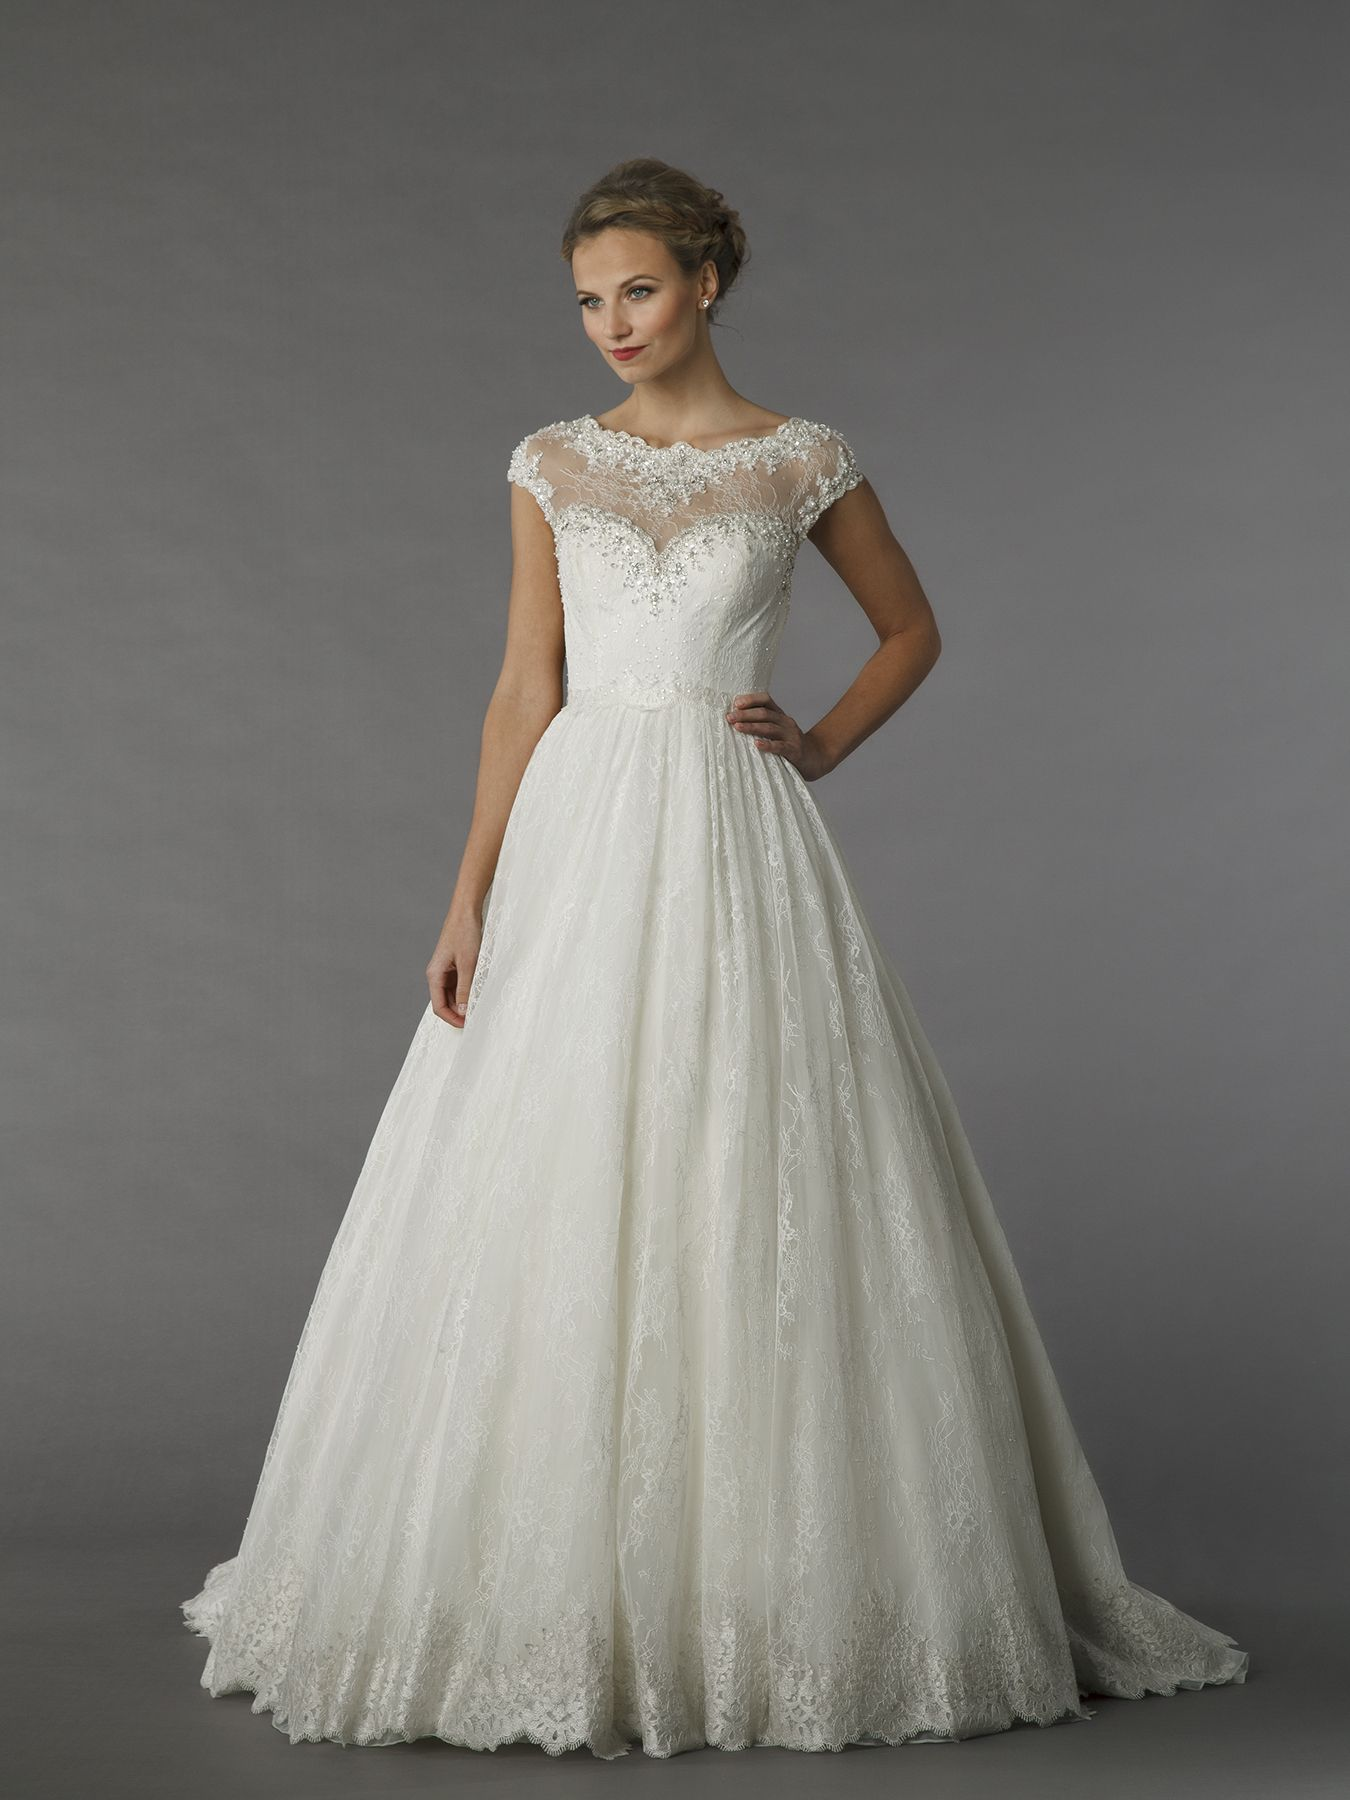 Mark zunino wedding dresses  Mark Zunino   Fashionuexquisite  Pinterest  Mark zunino